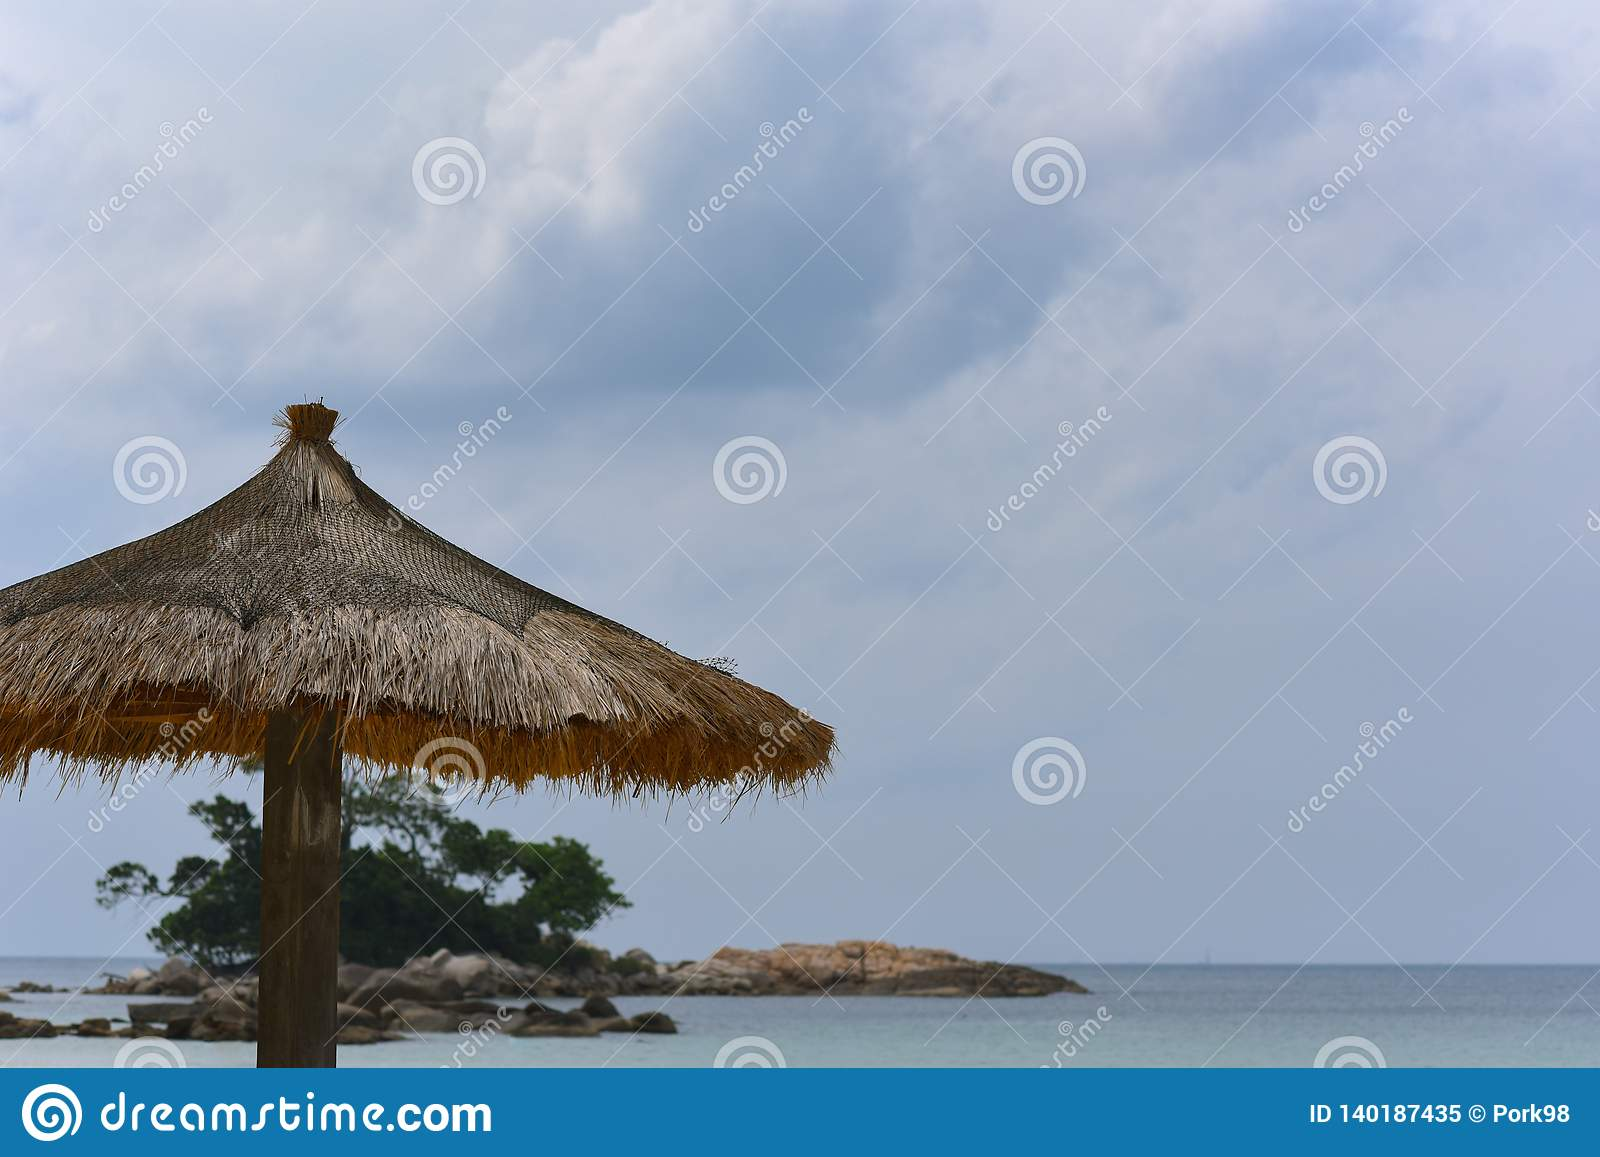 Parasol on a beach front